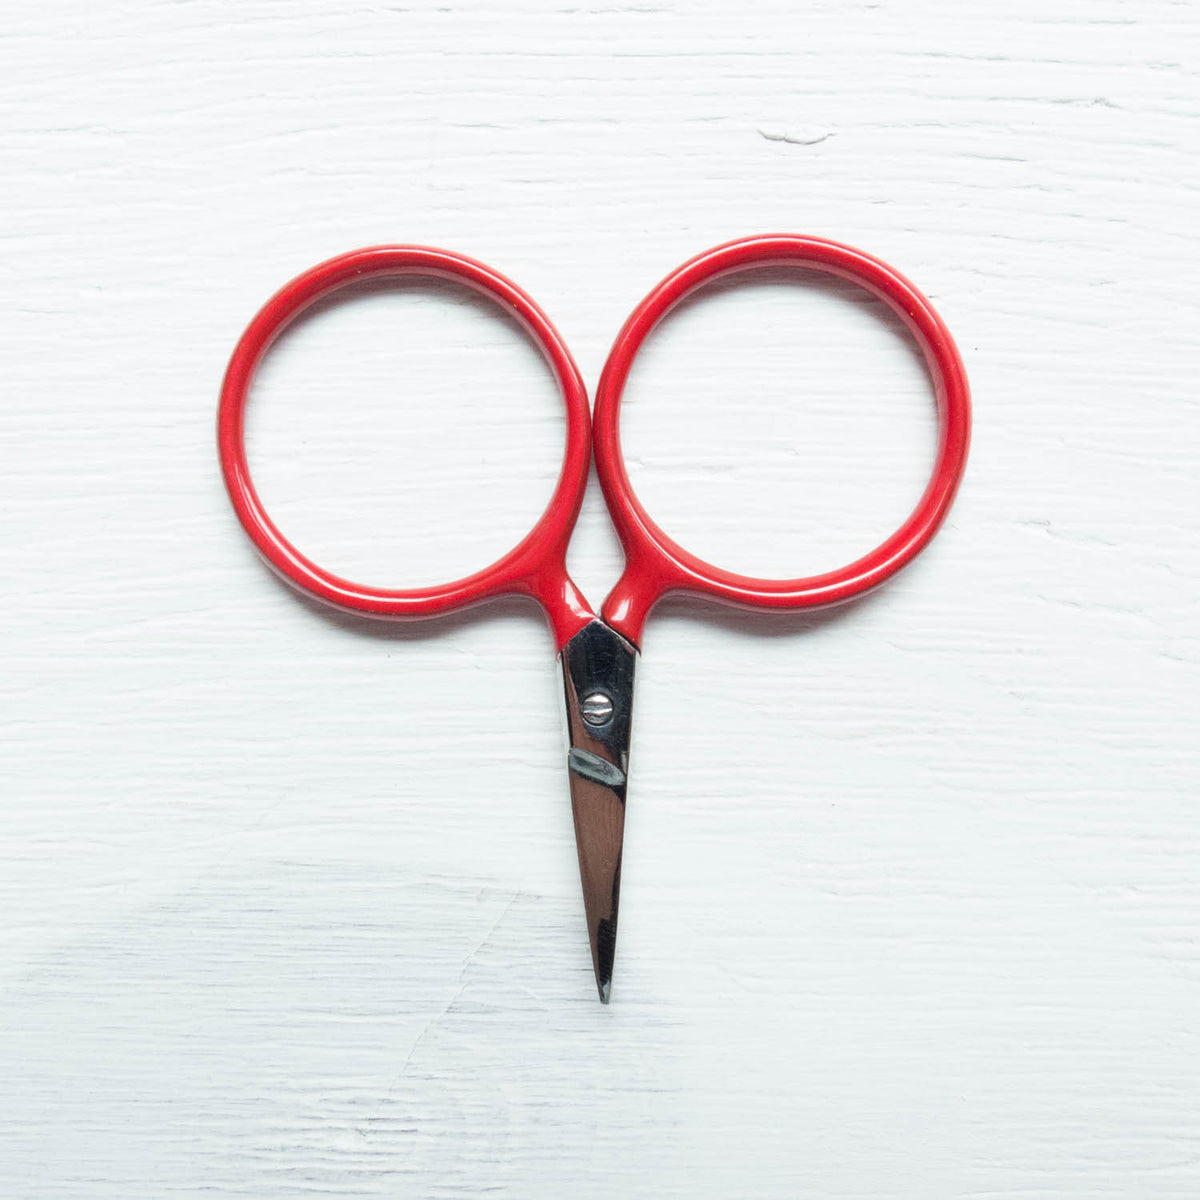 Modern Embroidery Scissors - Putford Red Scissors - Snuggly Monkey